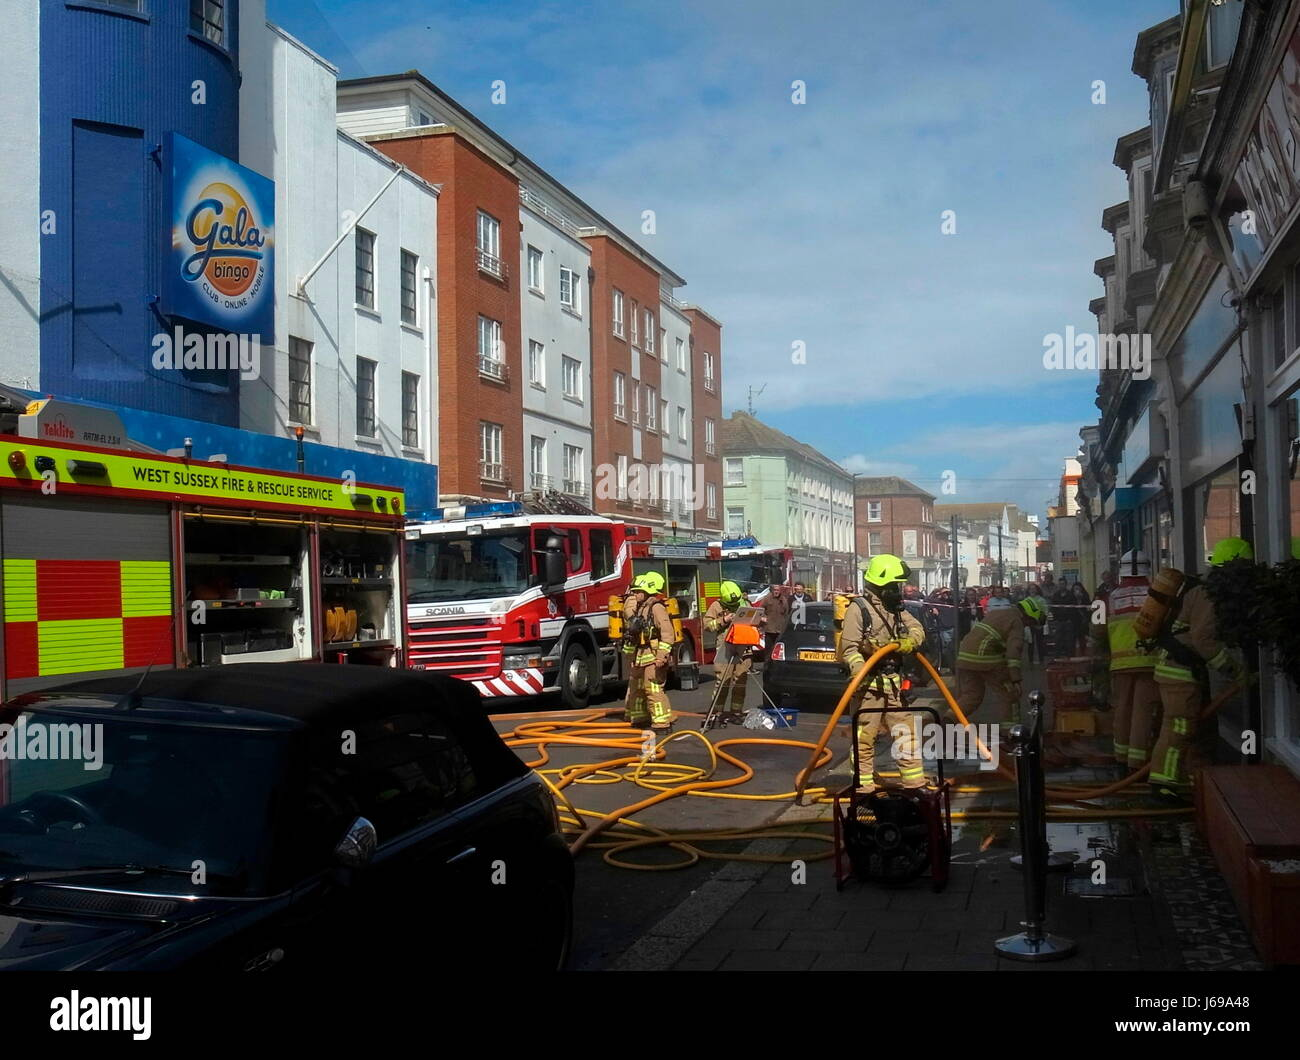 Worthing, England. 20th May, 2017. - Firemen tackle flat fire - West Sussex Fire & Rescue Service tackle a blaze - Stock Image